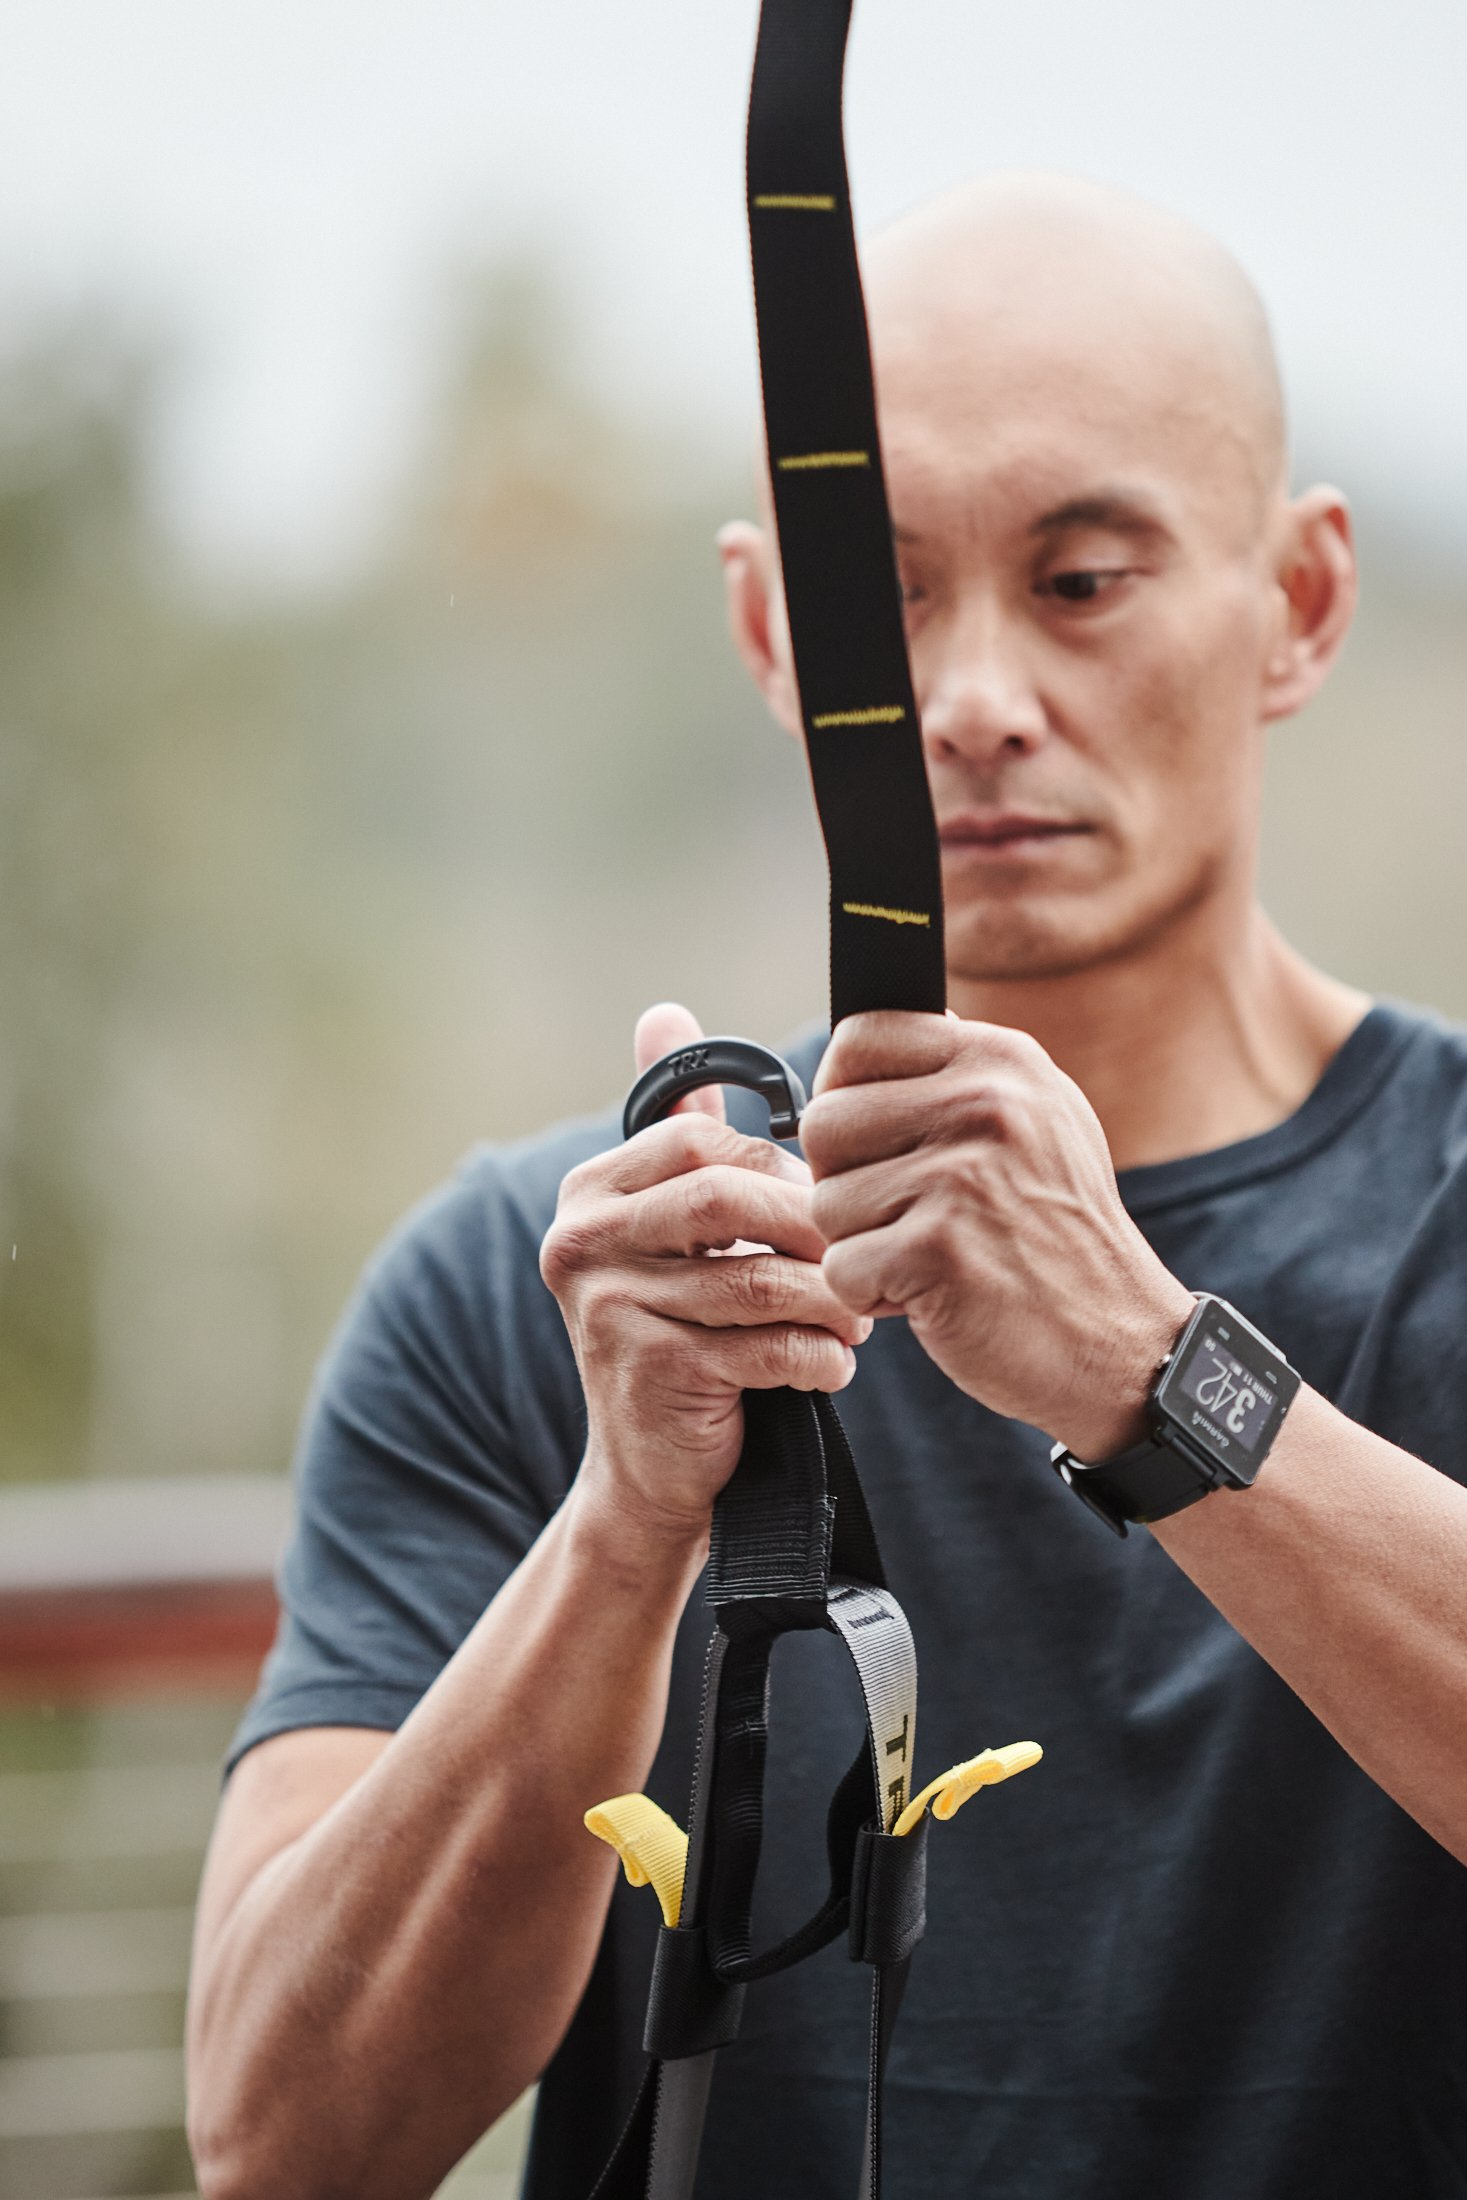 Jamel Ramiro, wearing a black short sleeve t-shirt and a black watch on his left wrist, clips his TRX Suspension Trainer onto its anchor.